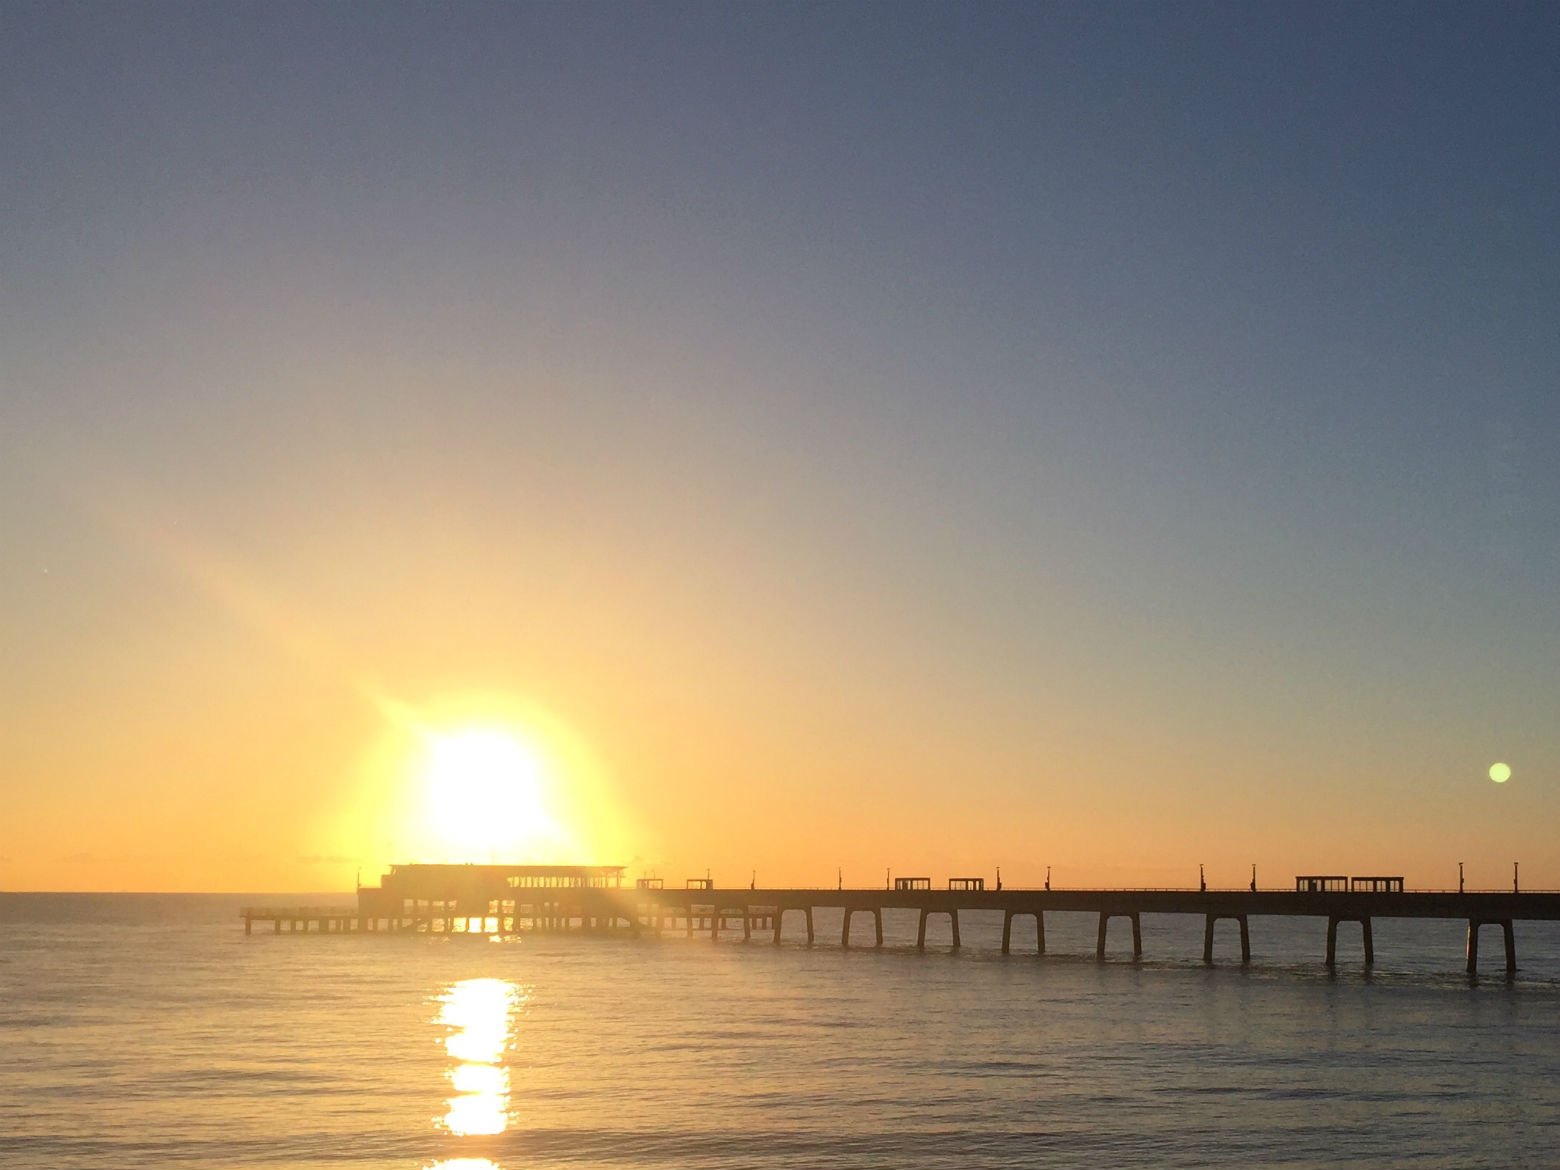 The pier at sunrise. Get up early so you don't miss it. Photo: SE